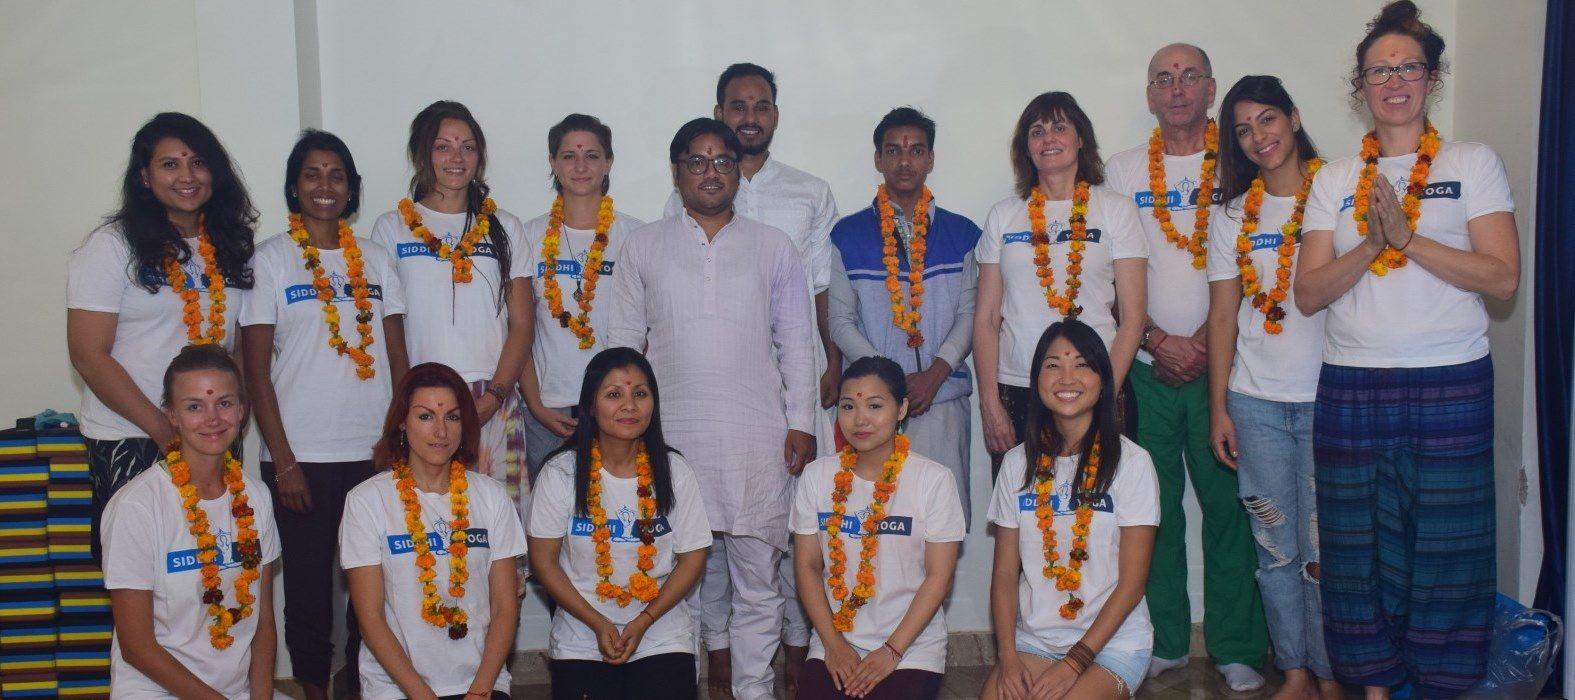 siddhi yoga rishikesh opening ceremony group